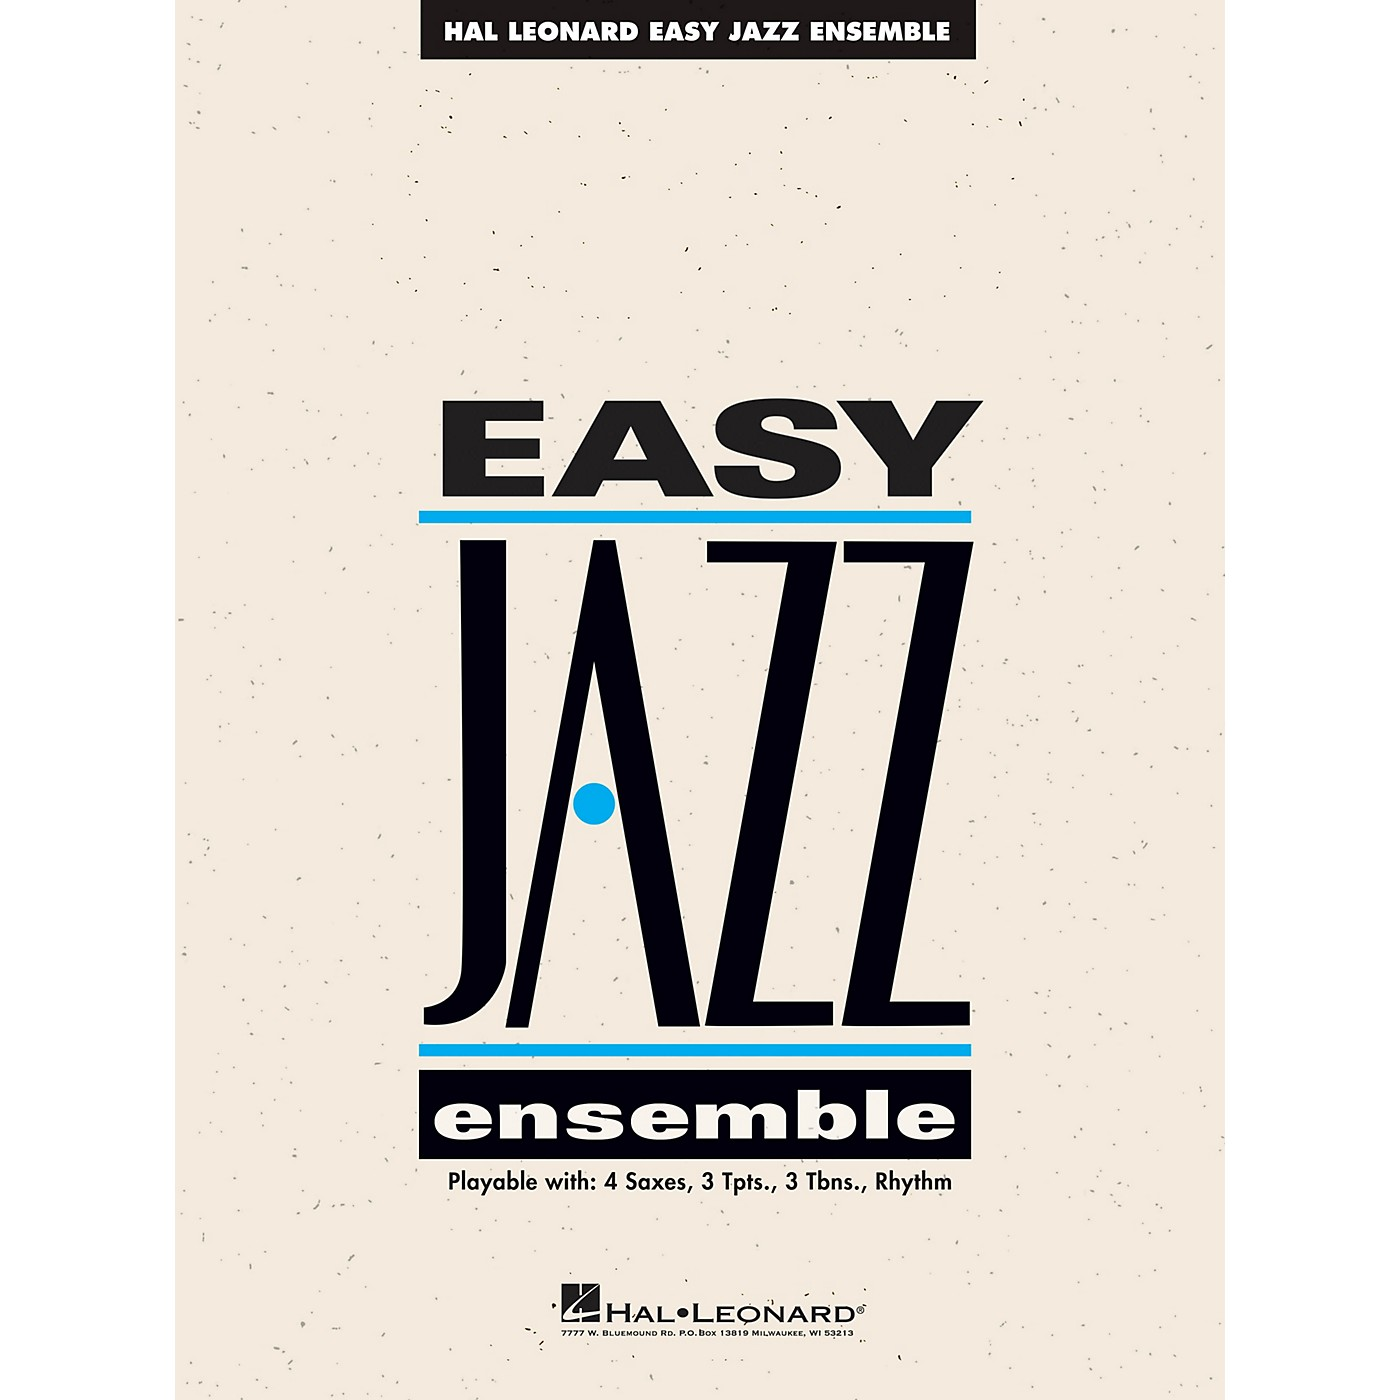 Hal Leonard The Best of Easy Jazz - Tenor Sax 1 (15 Selections from the Easy Jazz Ensemble Series) Jazz Band Level 2 thumbnail